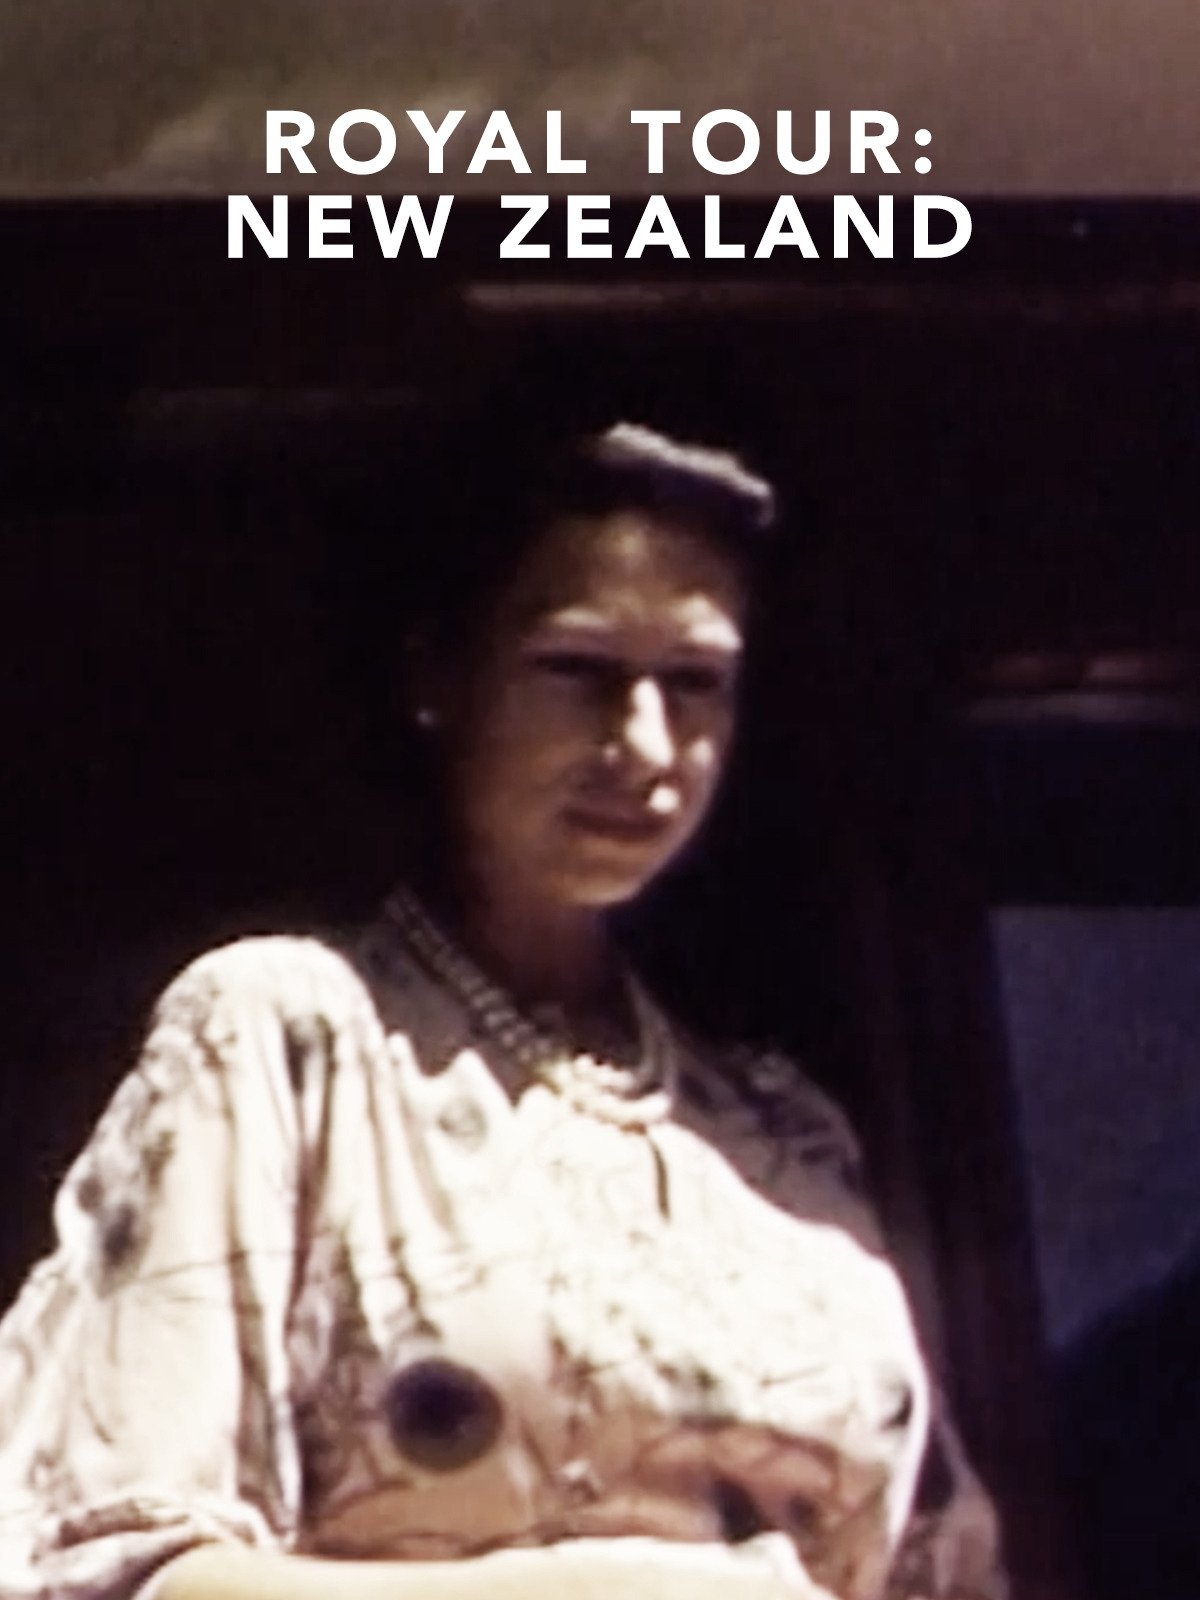 Royal Tour: New Zealand